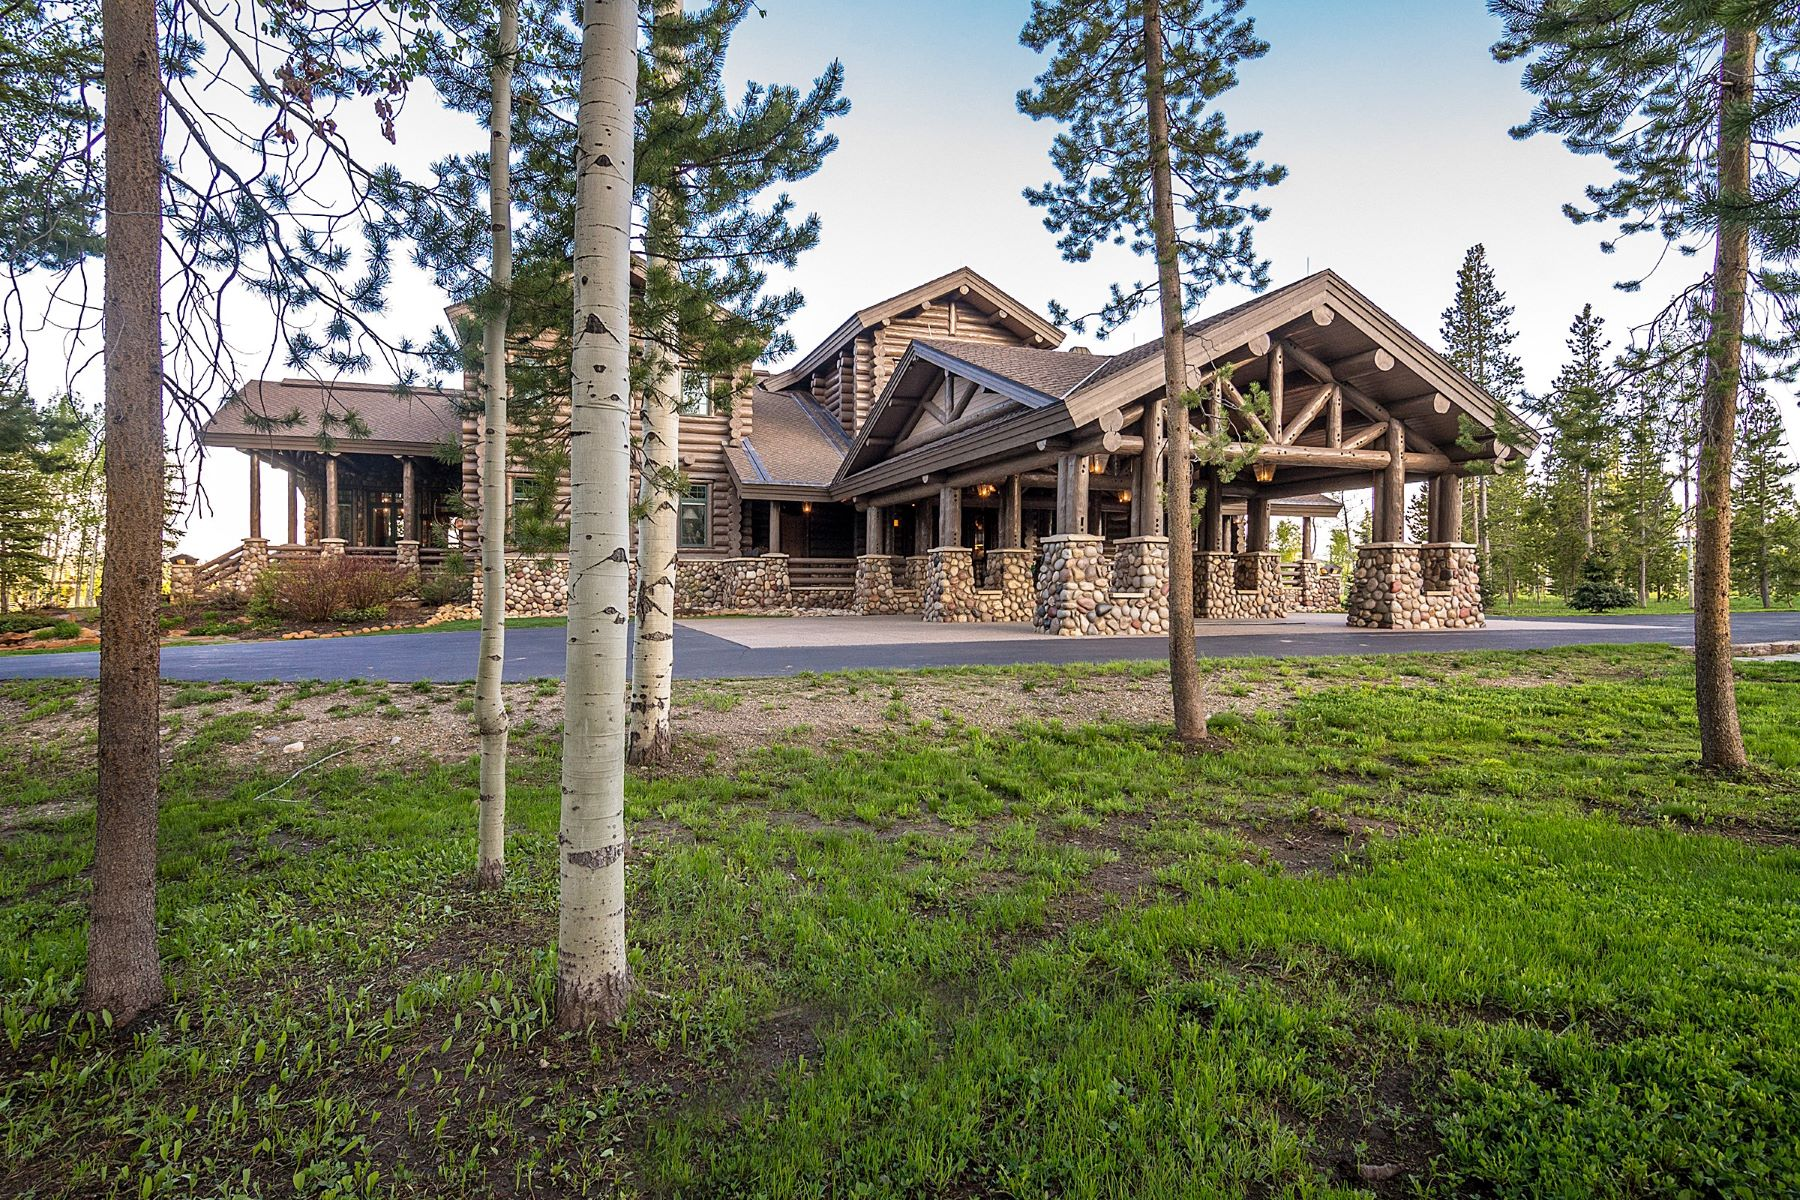 Additional photo for property listing at Snowy Mountain Ranch 61625 CR 62 Steamboat Springs, Colorado 80487 United States